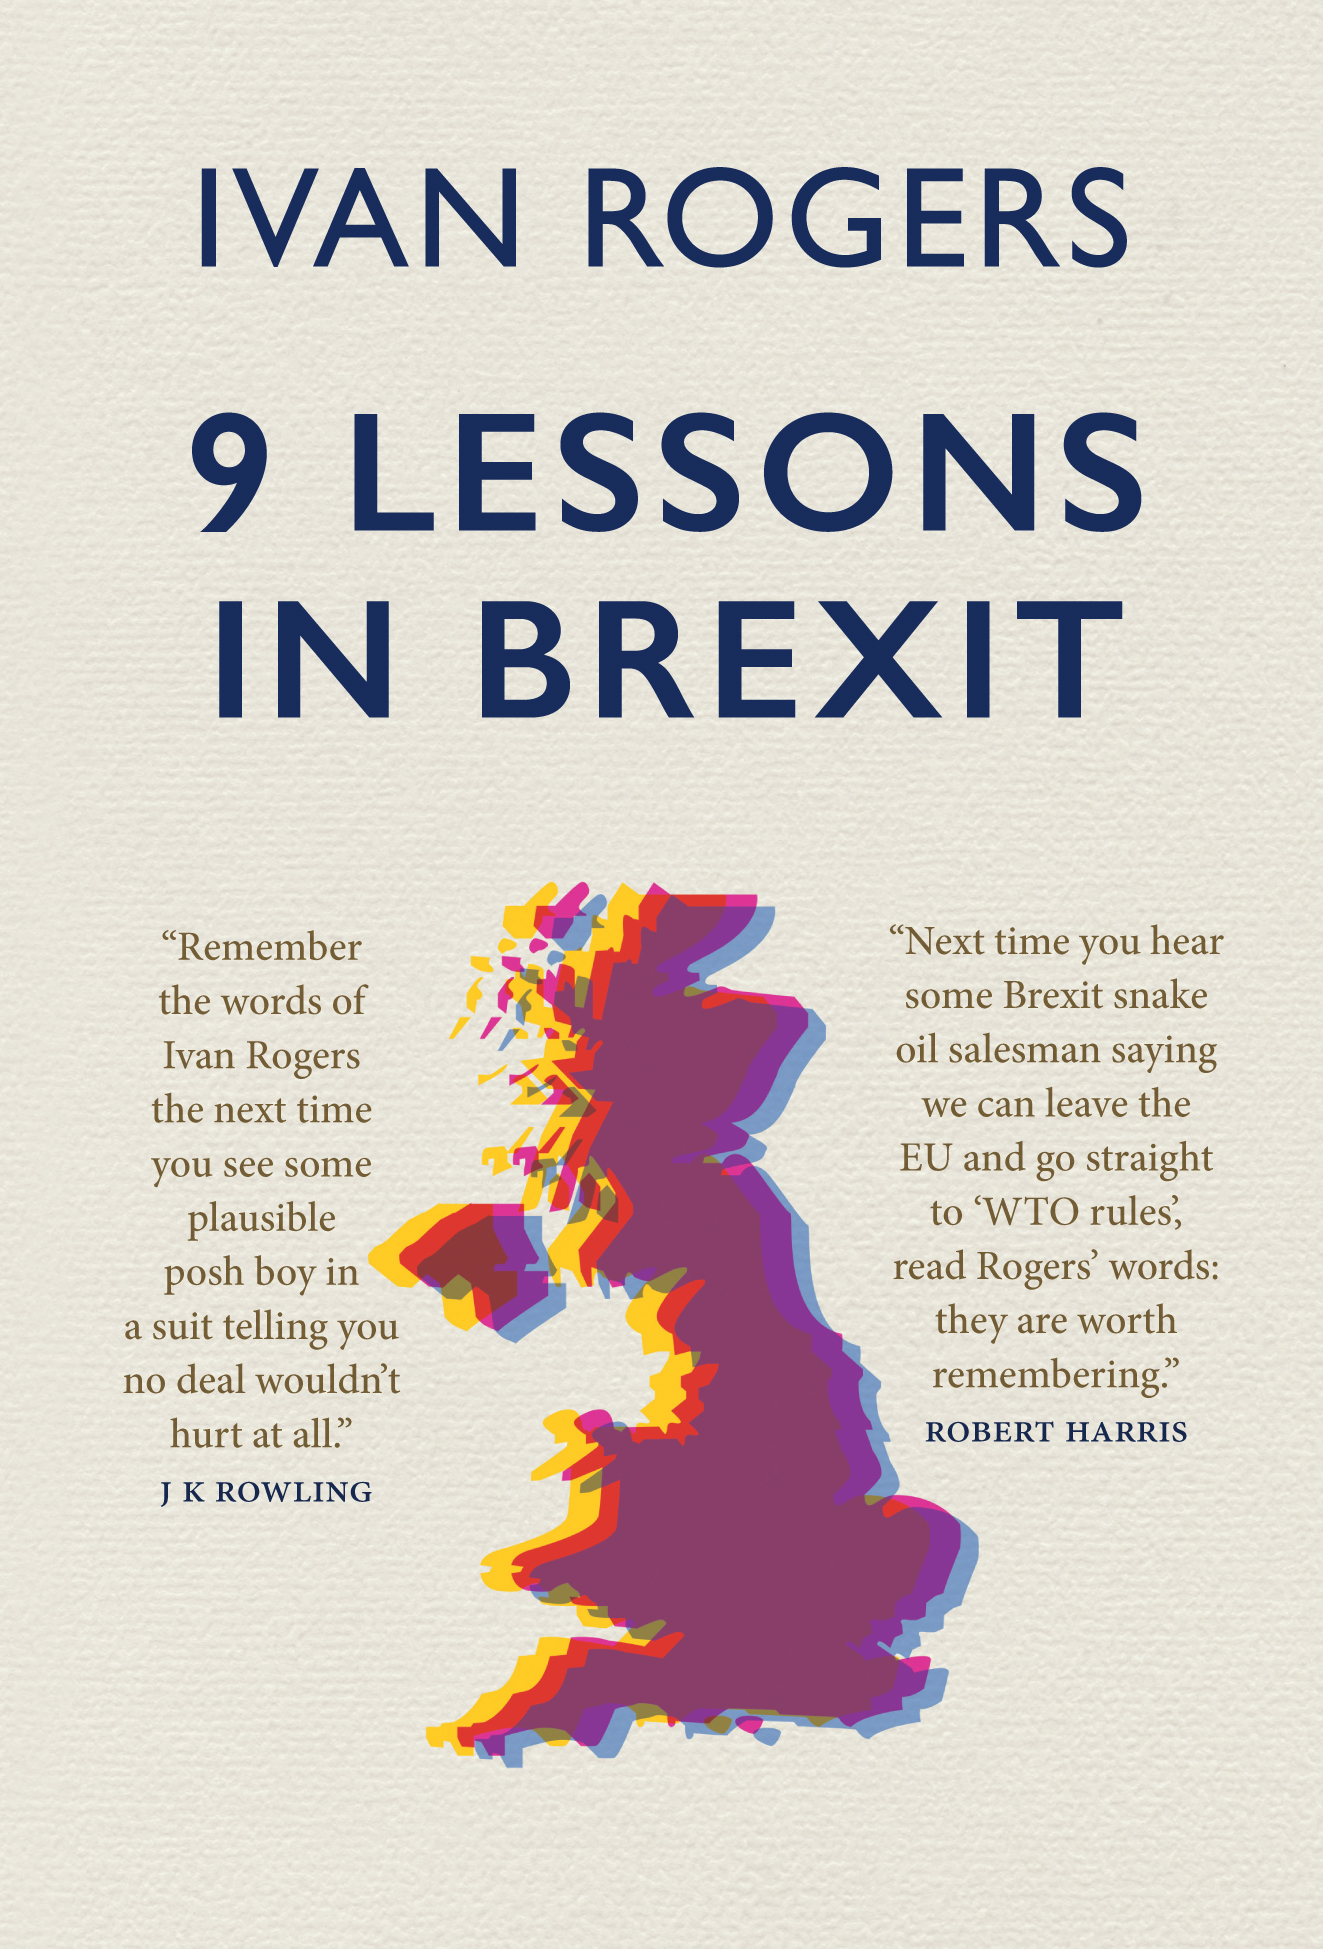 9 Lessons in Brexit with Ivan Rogers